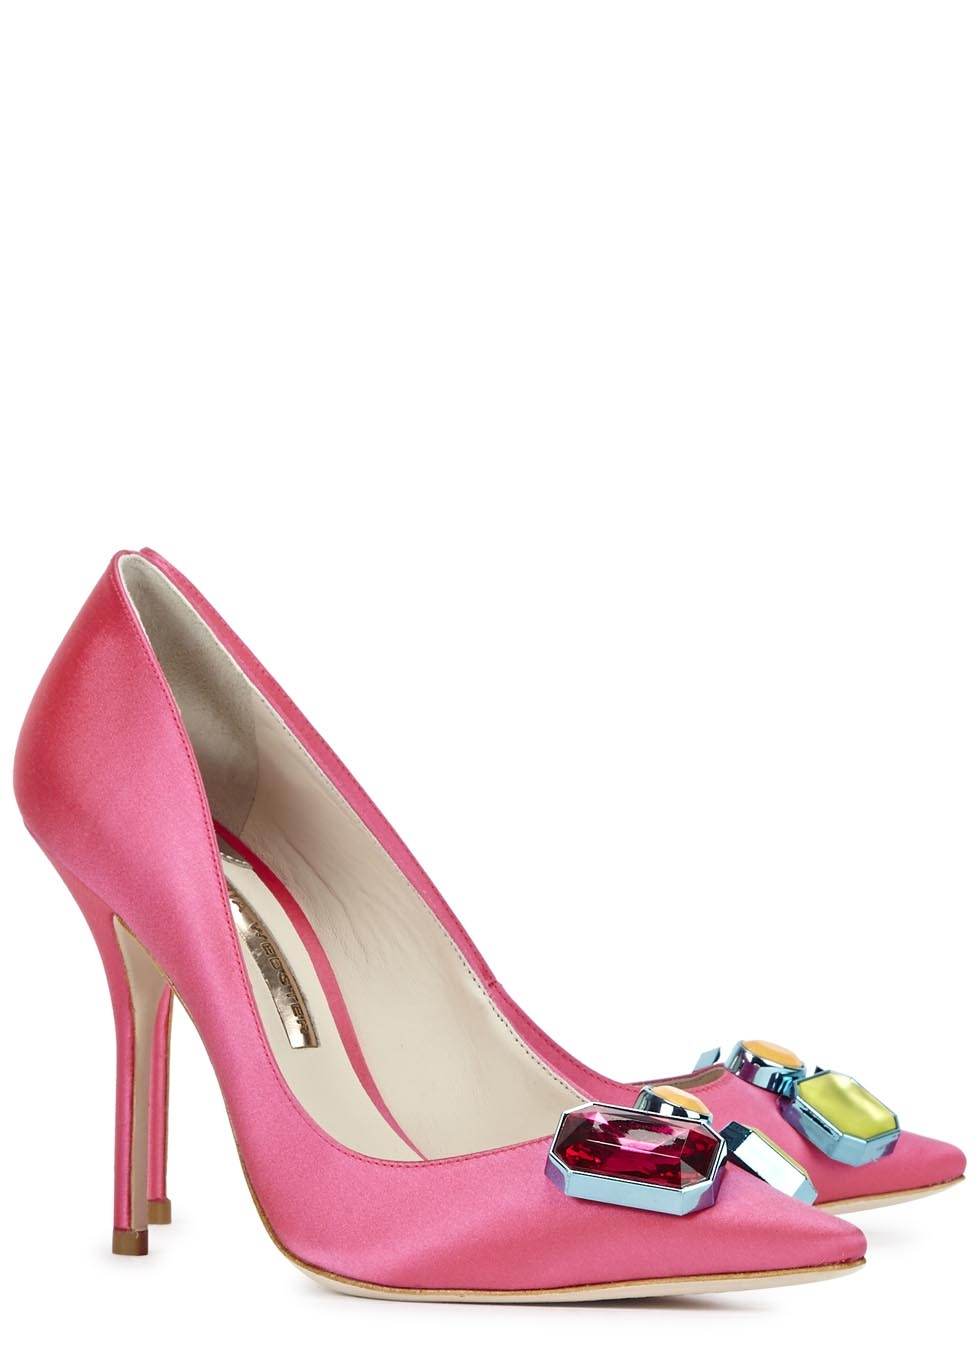 Sophia Webster Lola Gem satin pumps, was £340 - now £170